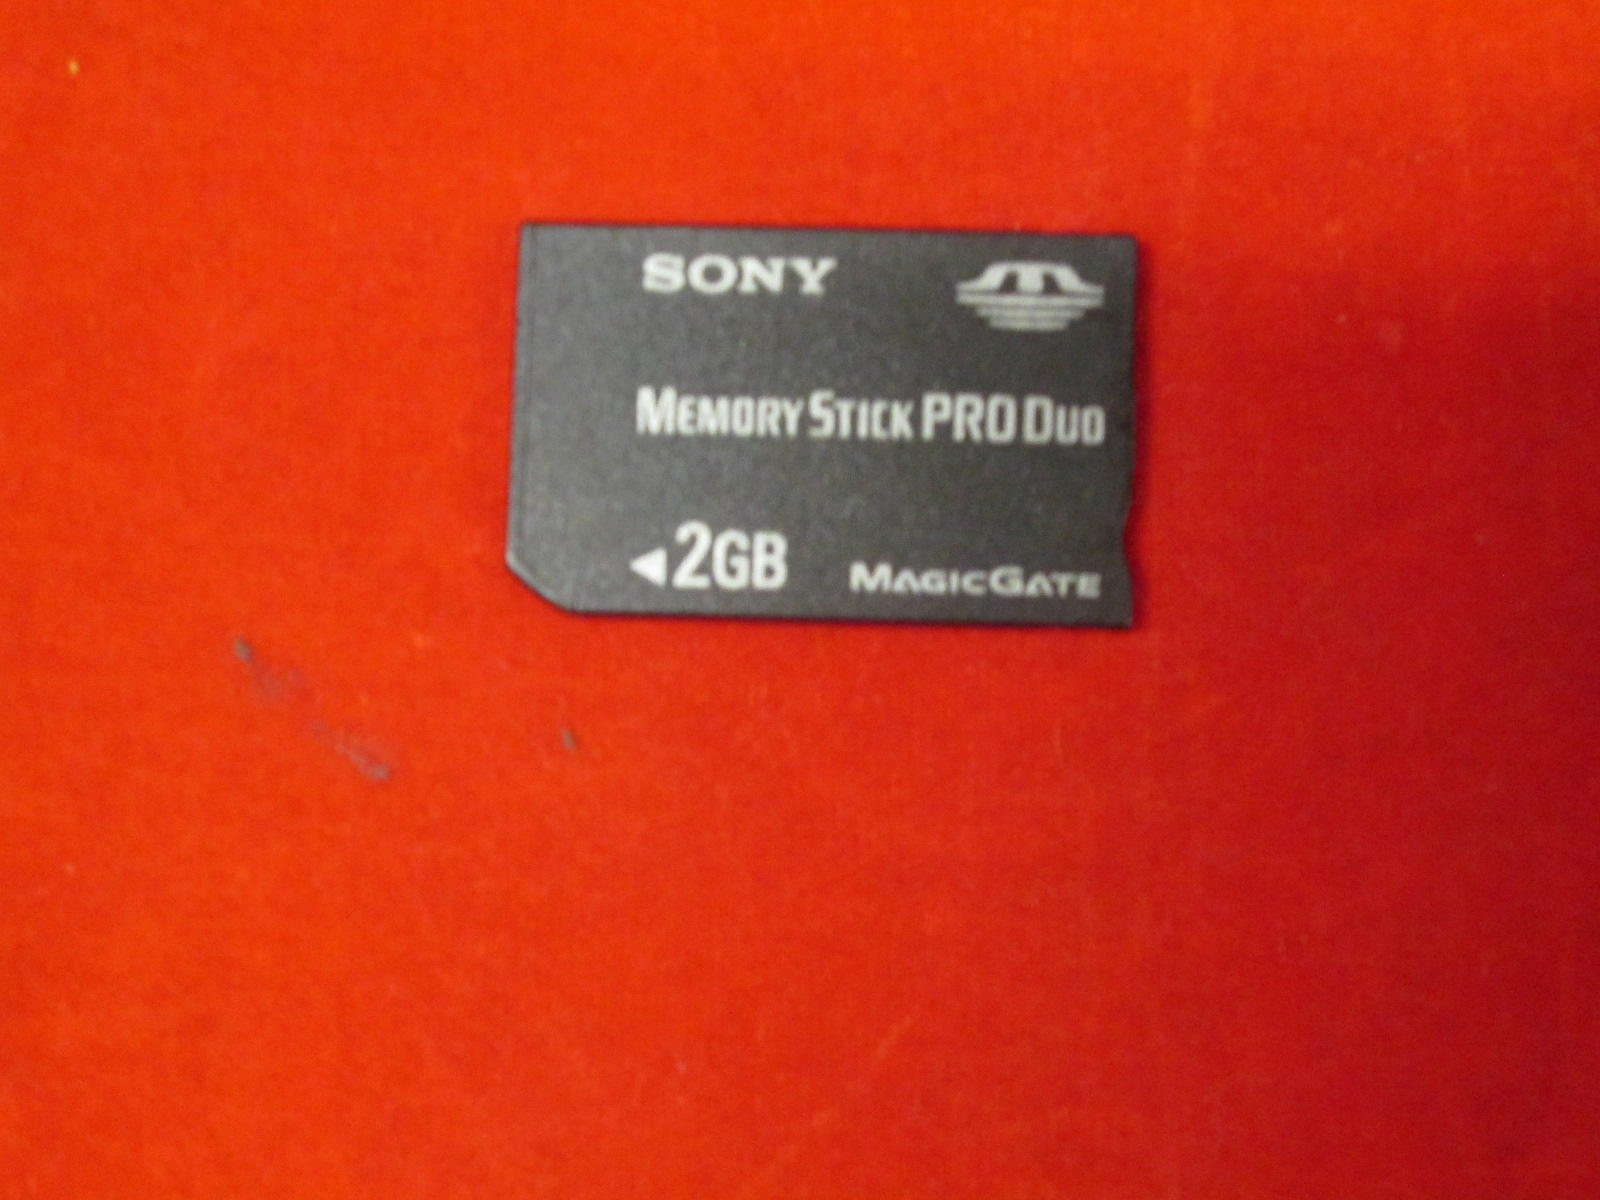 Sony 2 GB Memory Stick Pro Duo Memory Card MSX-M2GS